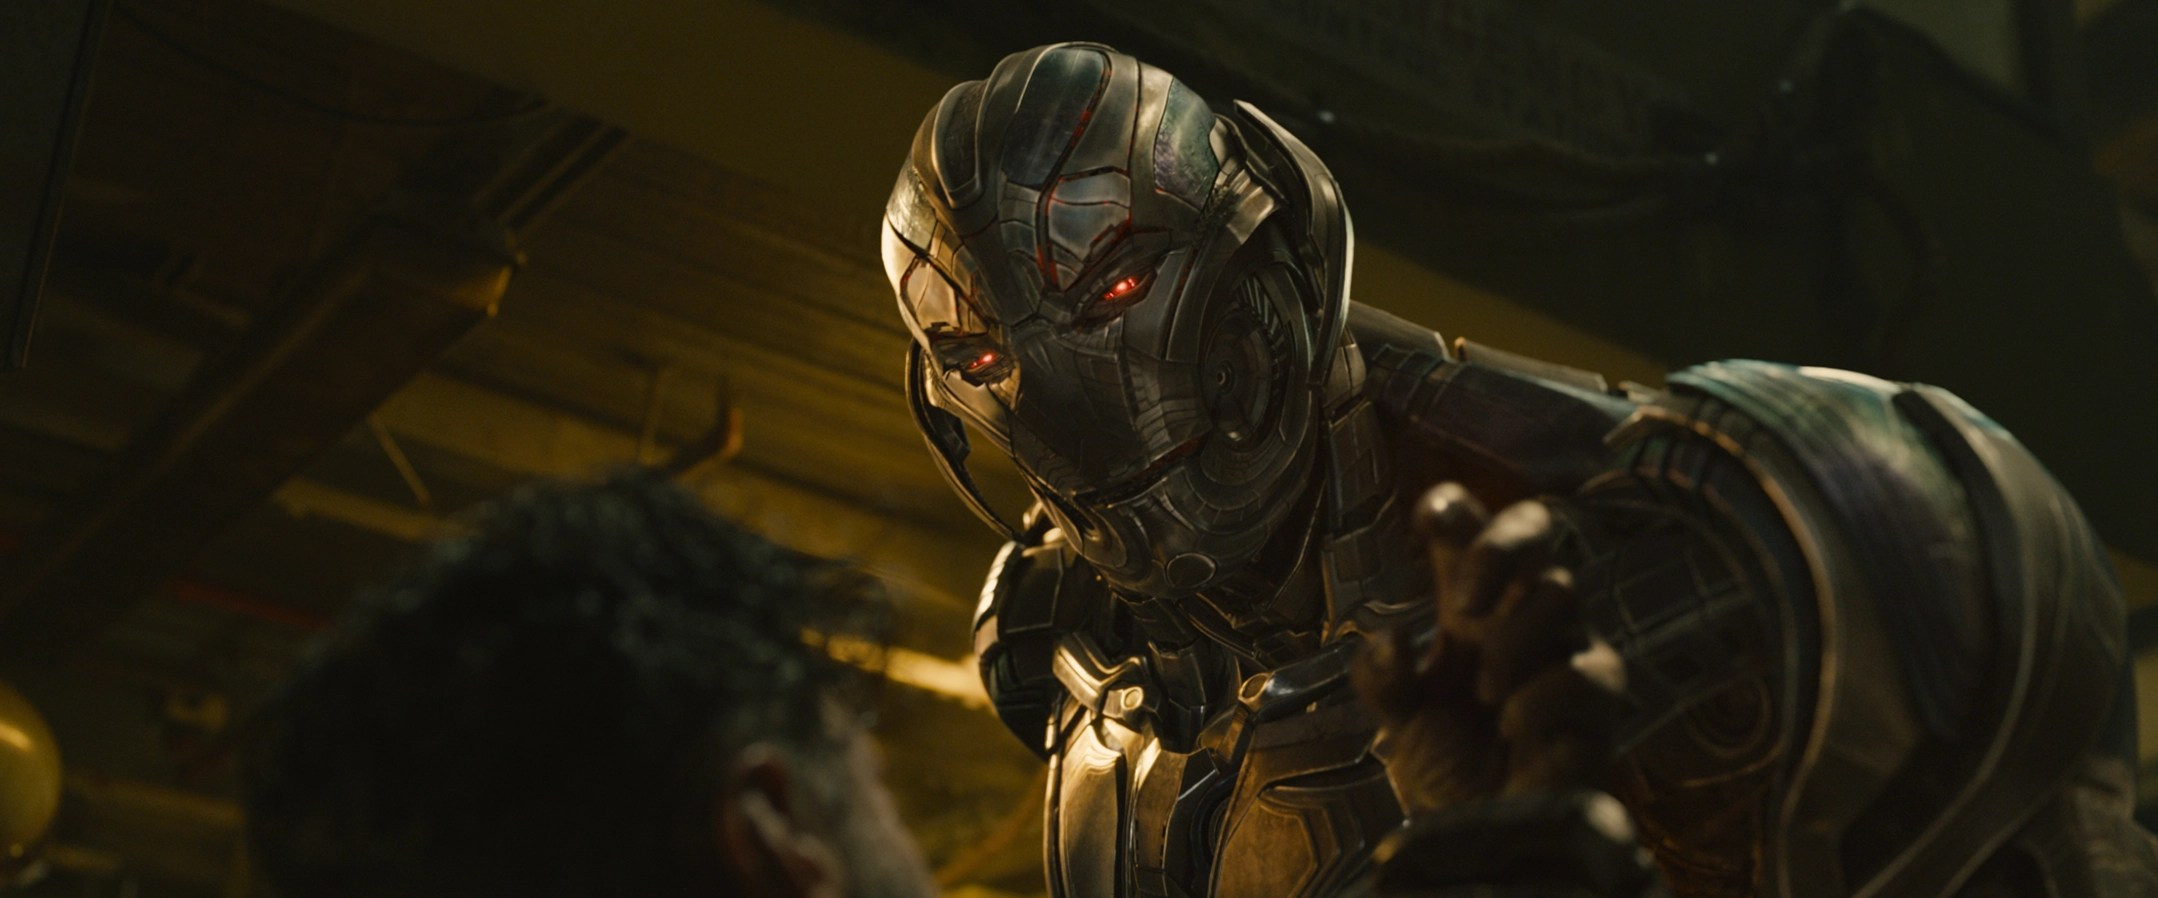 Avengers: Age of Ultron Was Marvel's Biggest Creative Failure |Ultron Avengers Age Of Ultron